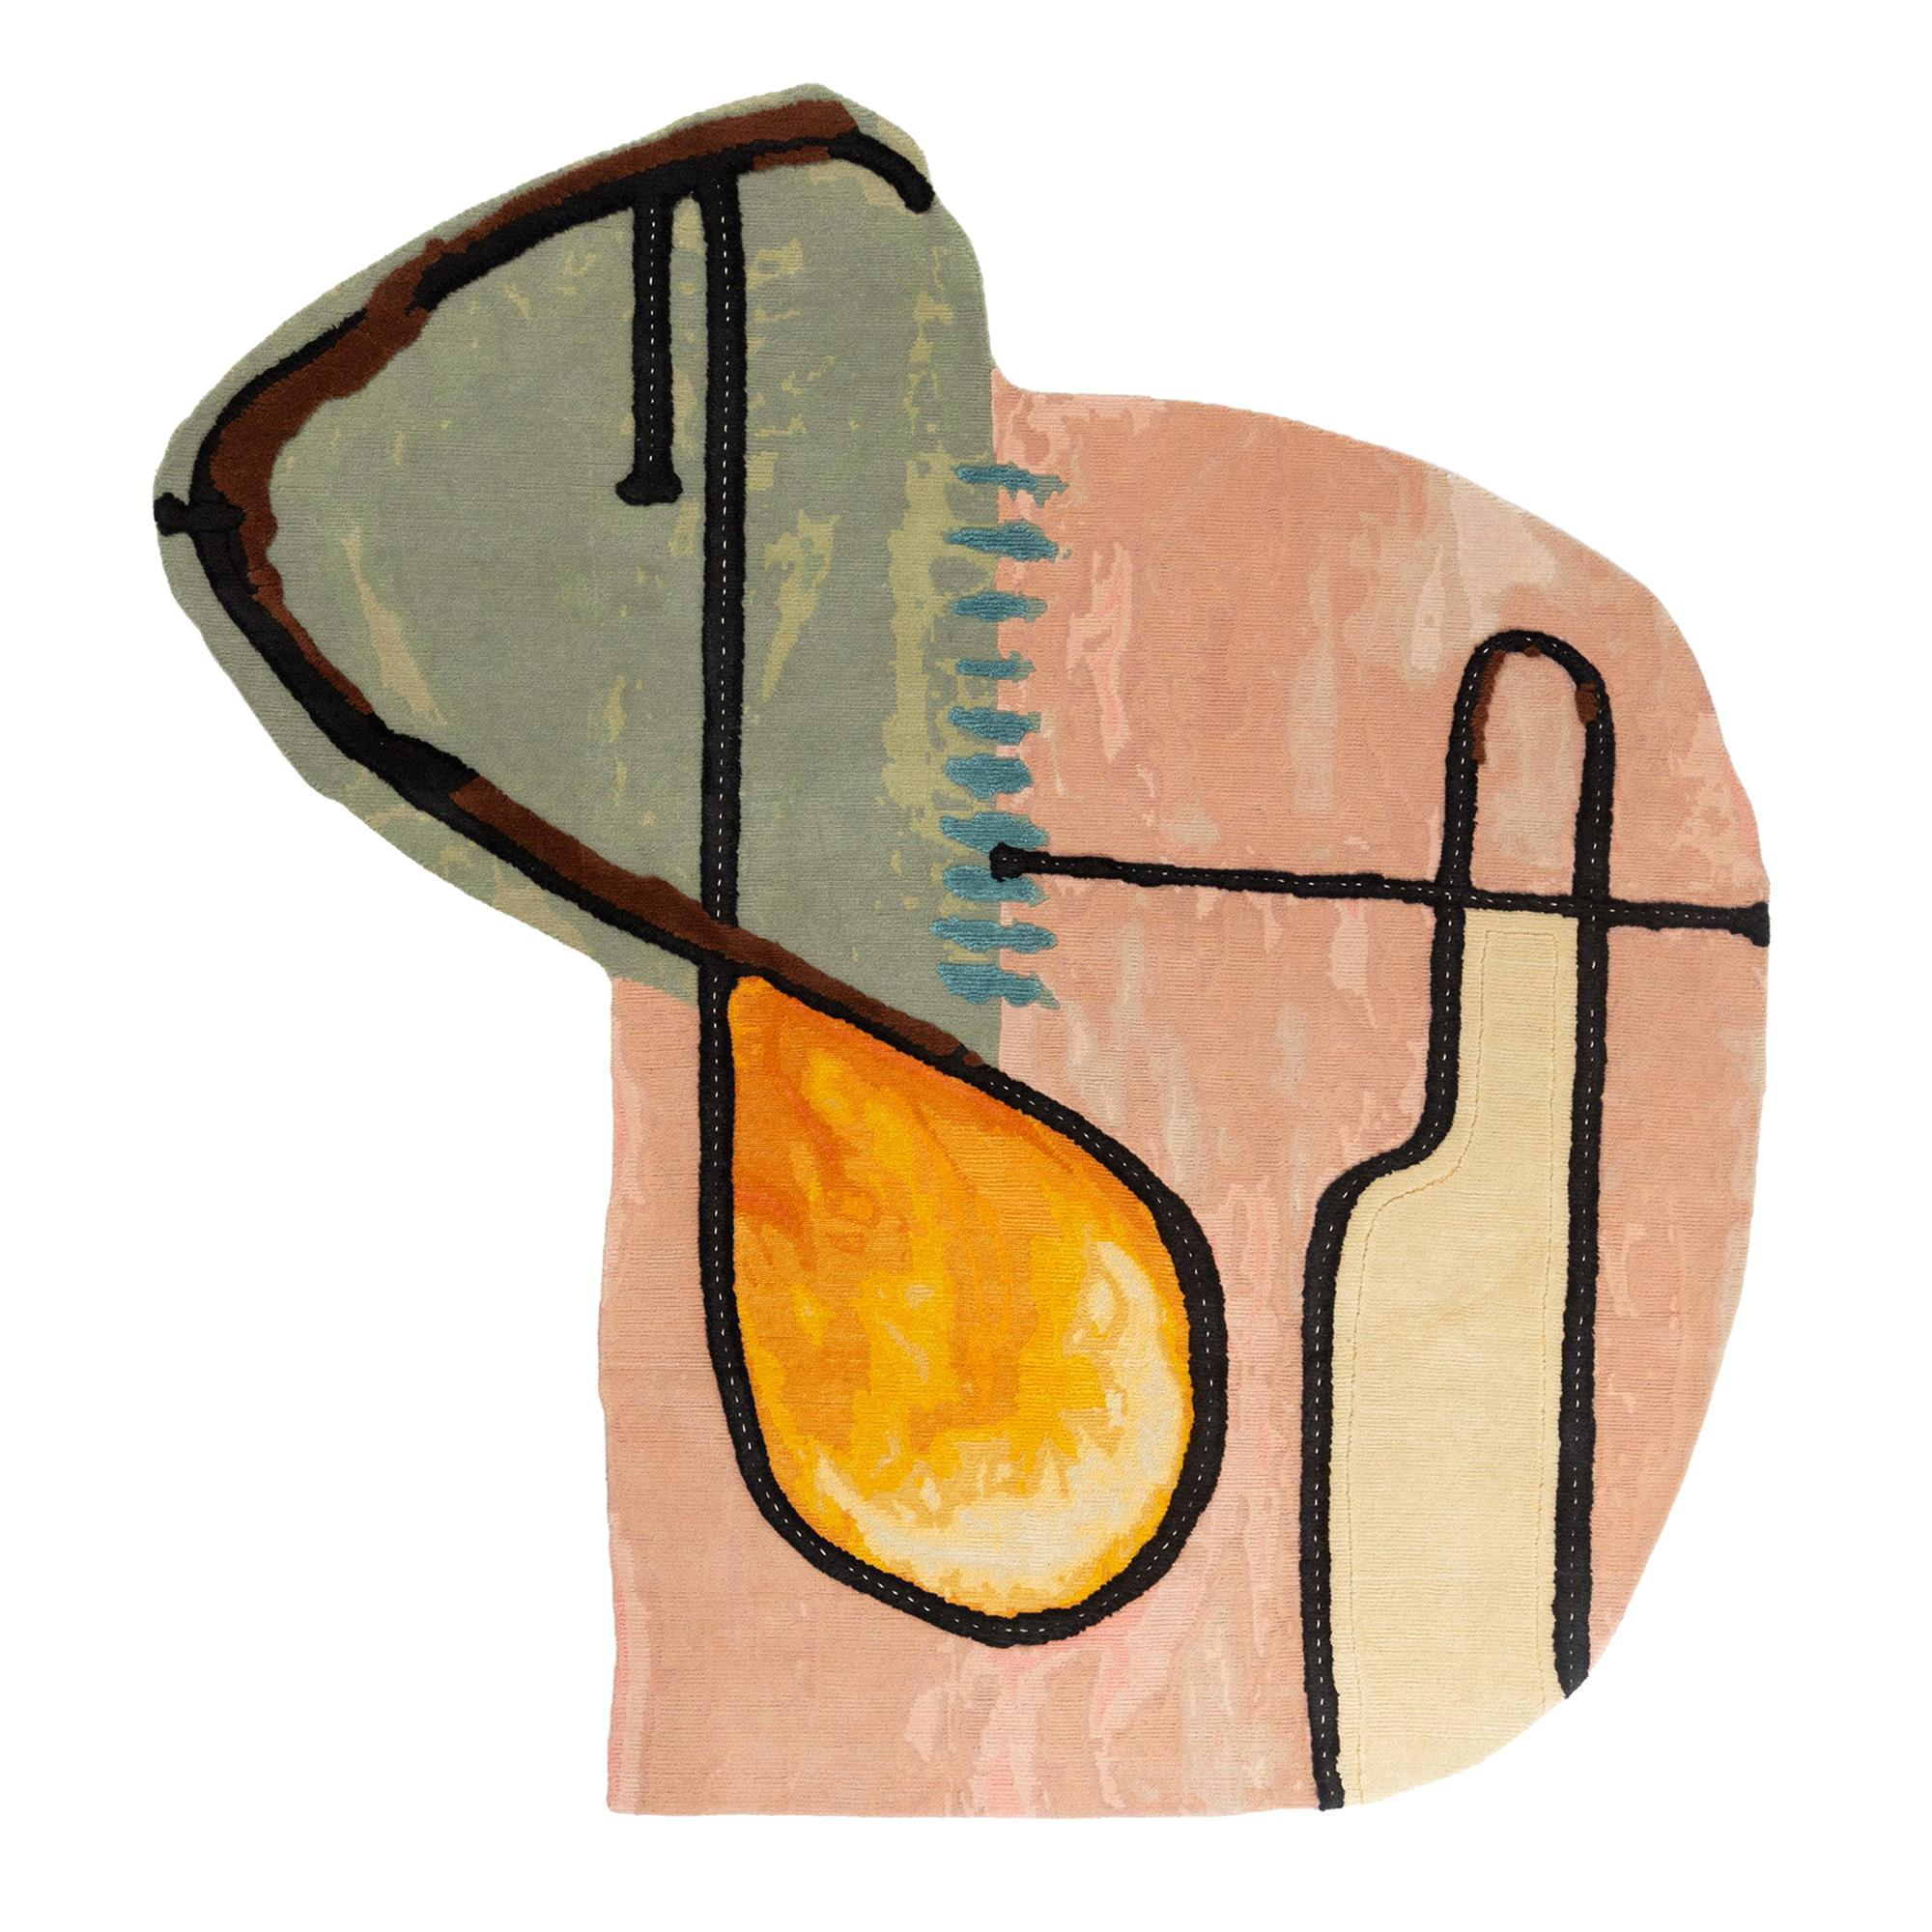 Abstract Composition Doodles Rug by Faye Toogood for CC-Tapis